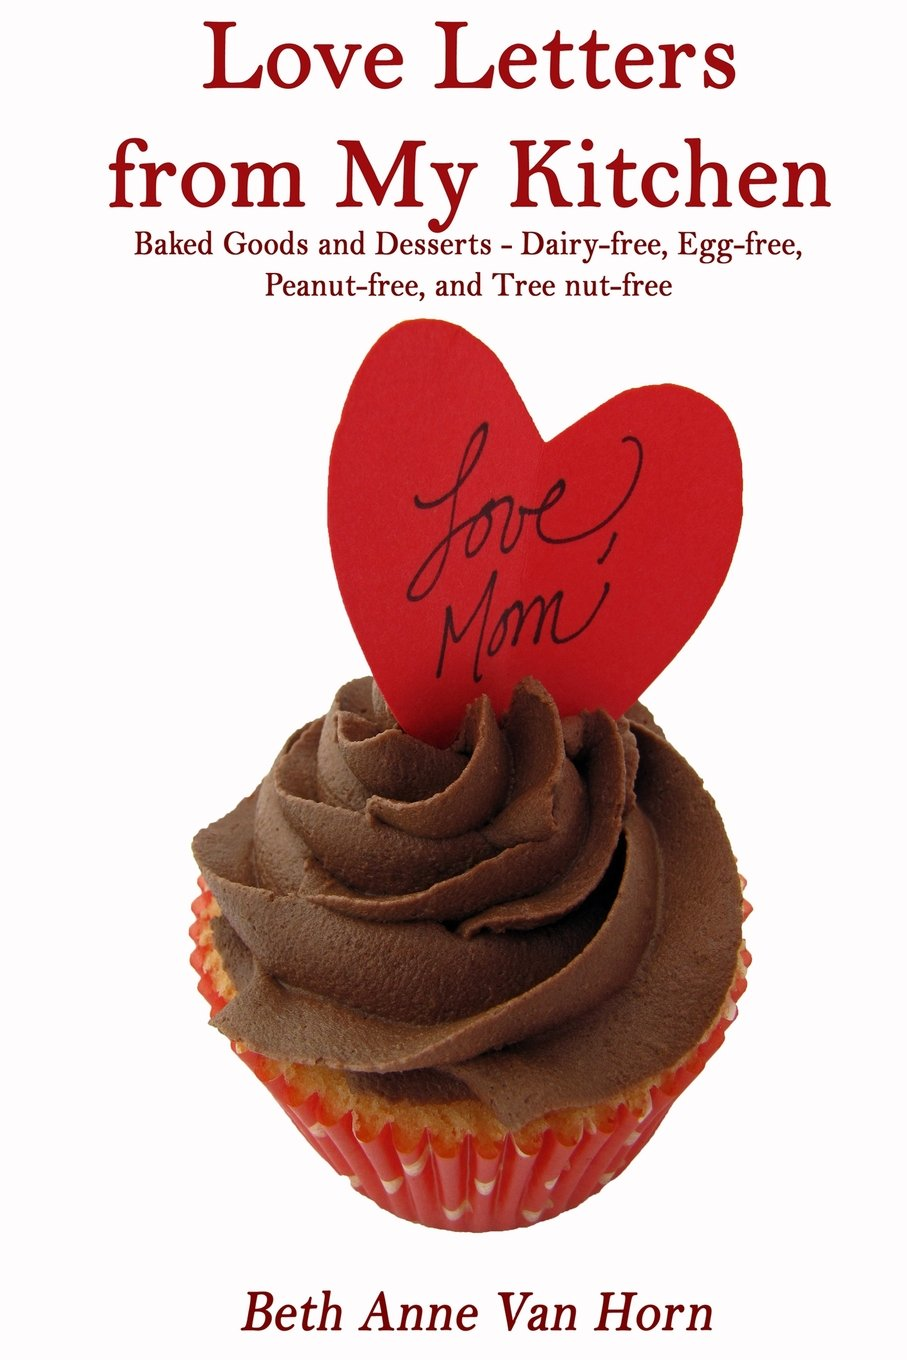 Download Love Letters from My Kitchen: Baked Goods and Desserts - Dairy-free, Egg-free, Peanut-free, and Tree Nut-free ebook